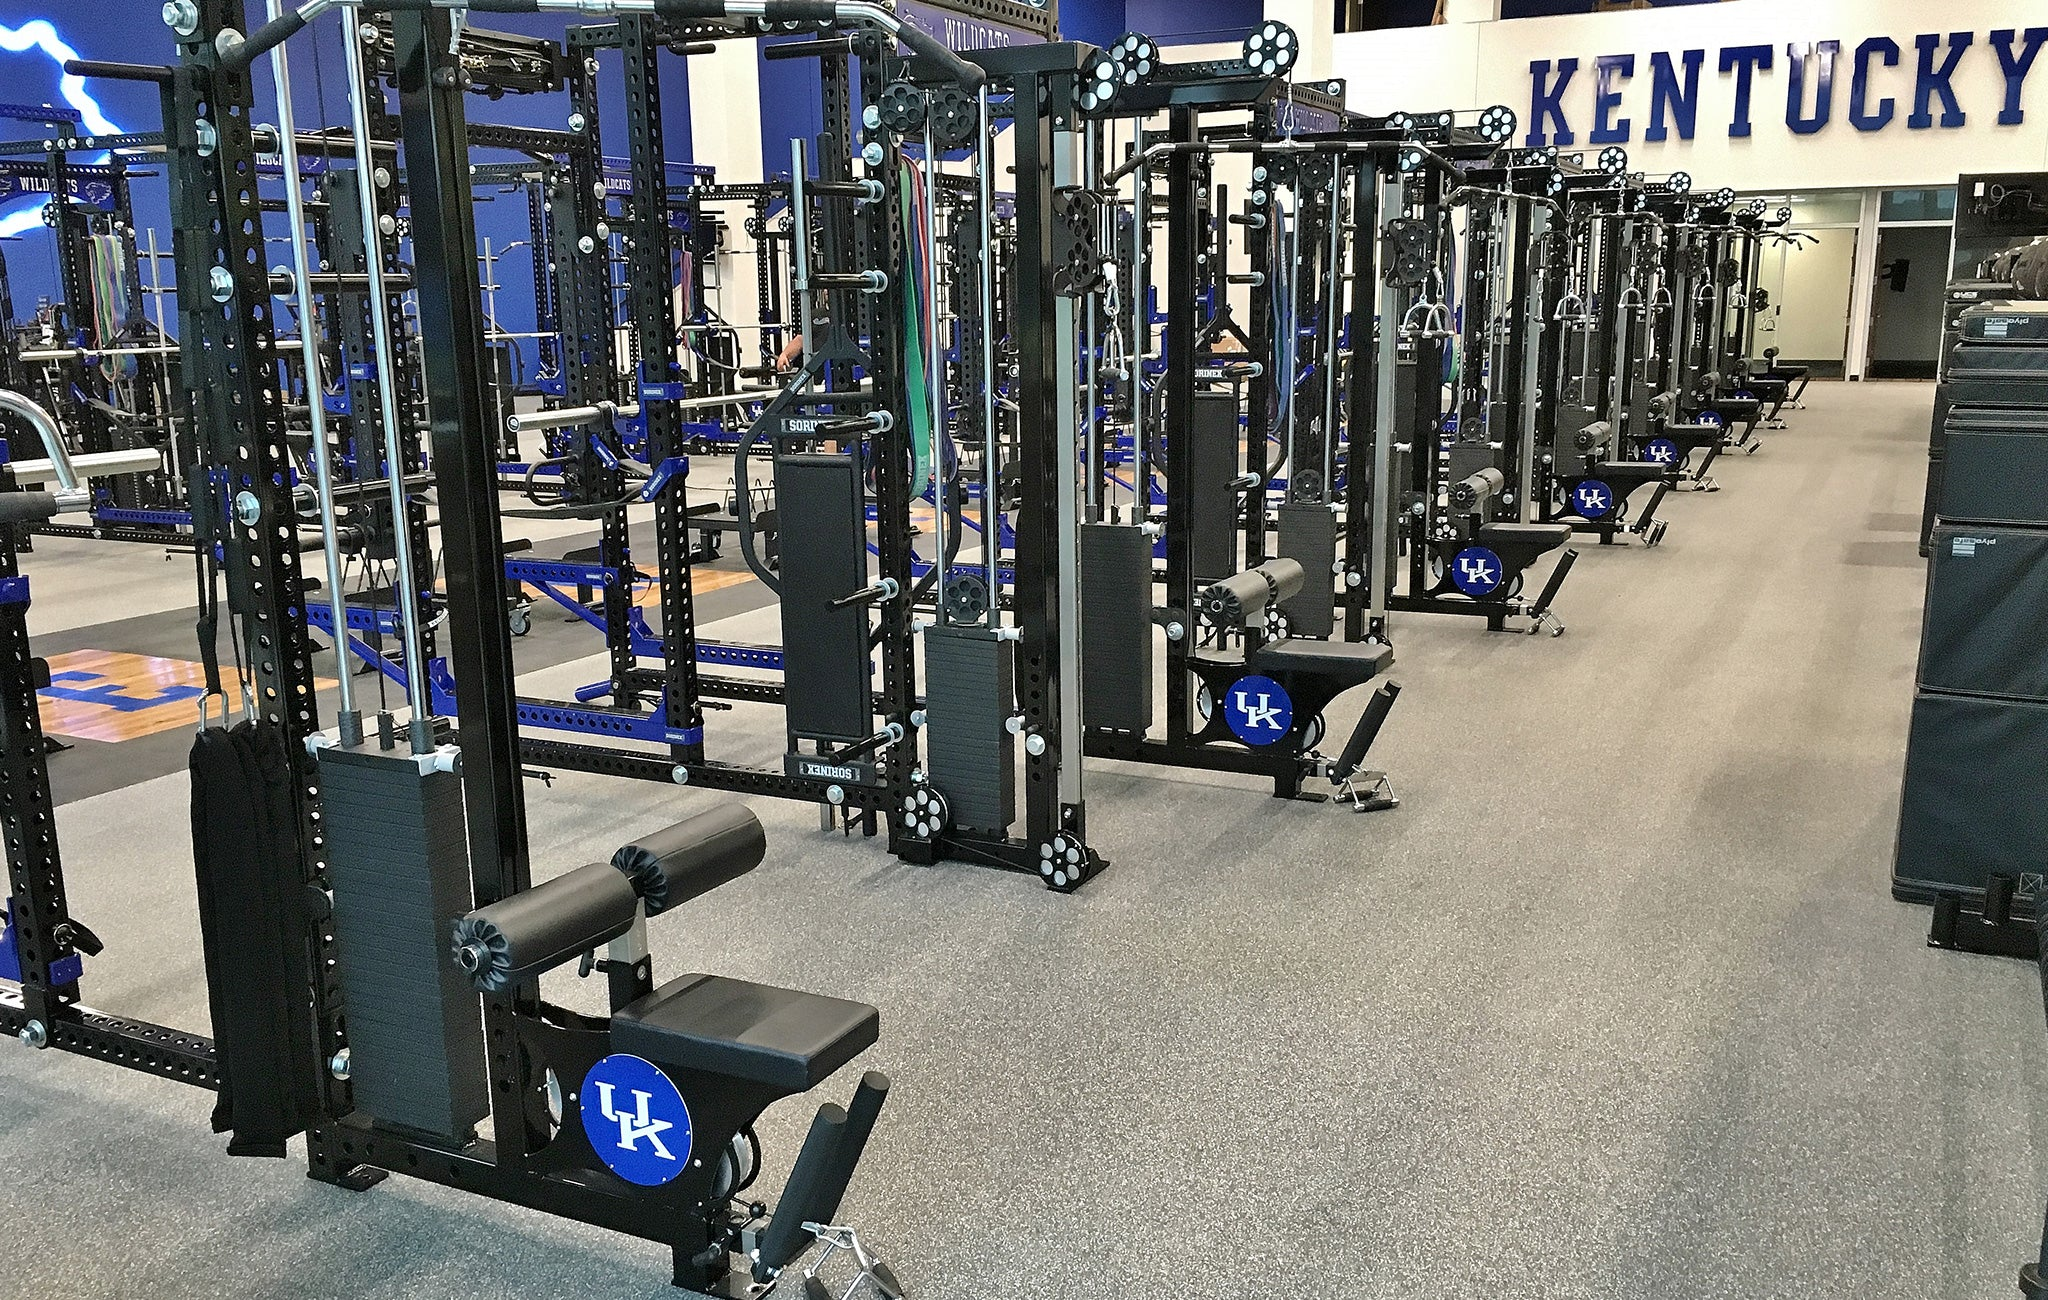 University of Kentucky strength training facilities